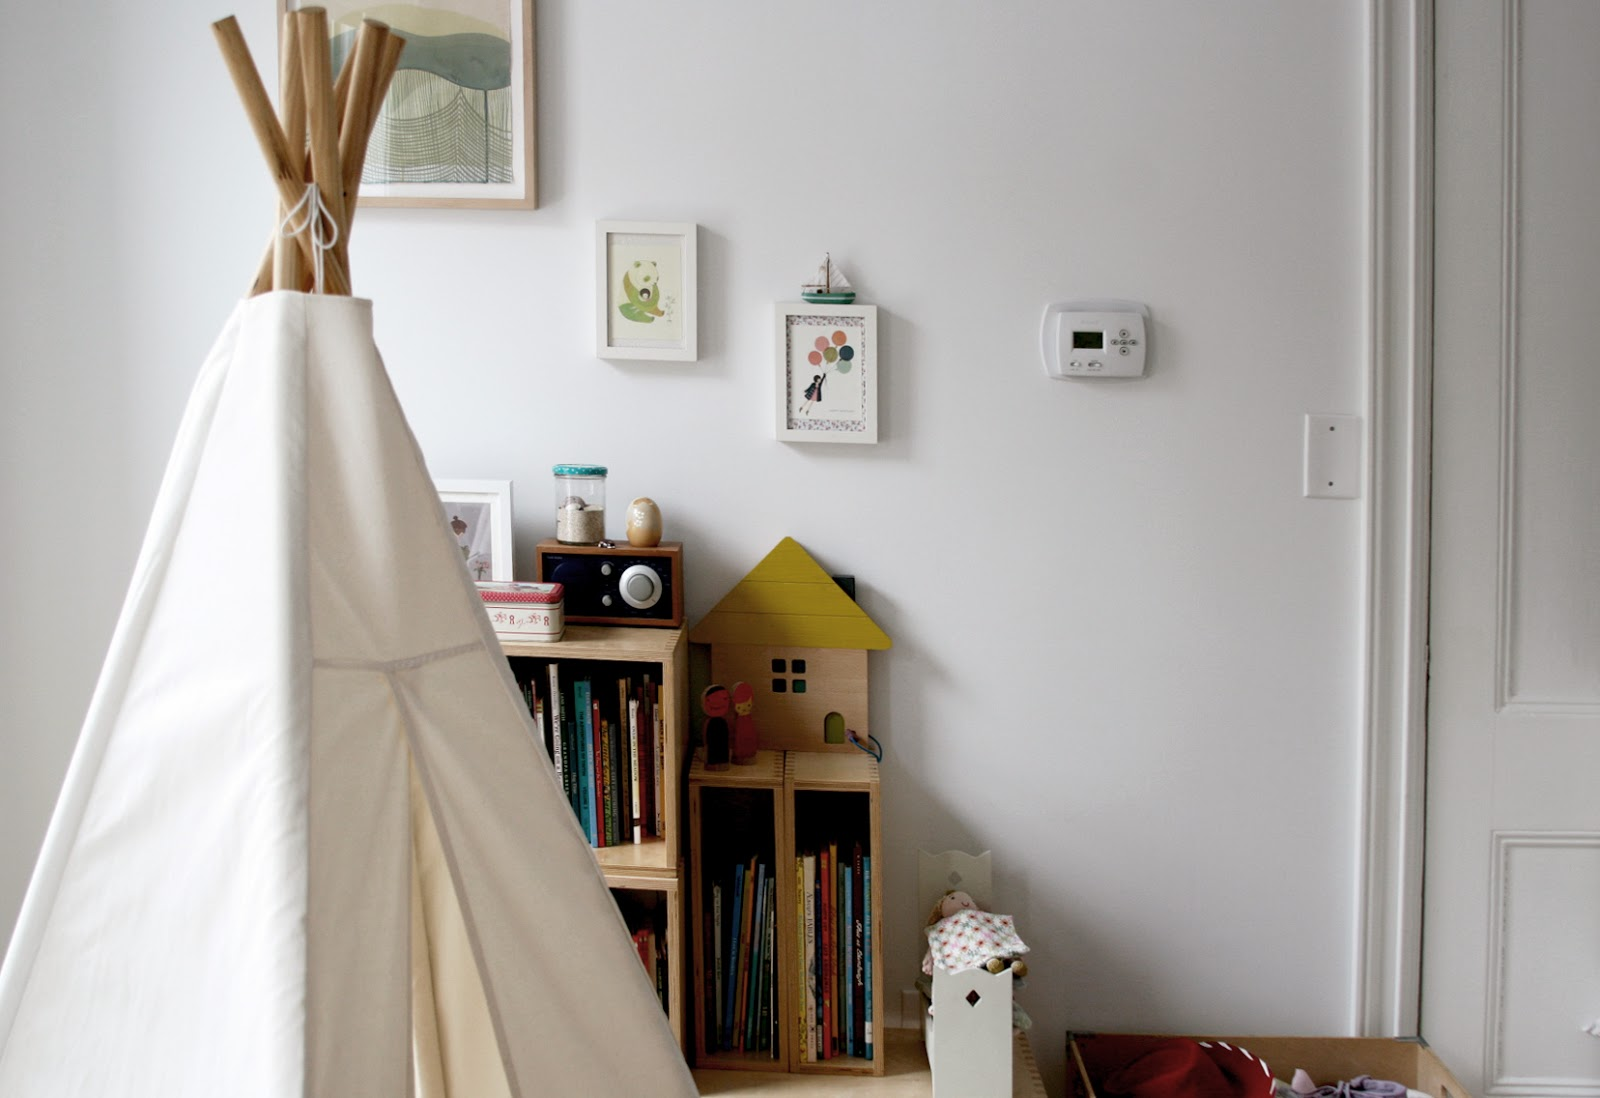 Amazing shopping guide perch loft bed and classic crib by oeuf teepee by great plains rug and rocker abc carpet and home play kitchen by momoll storage boxes